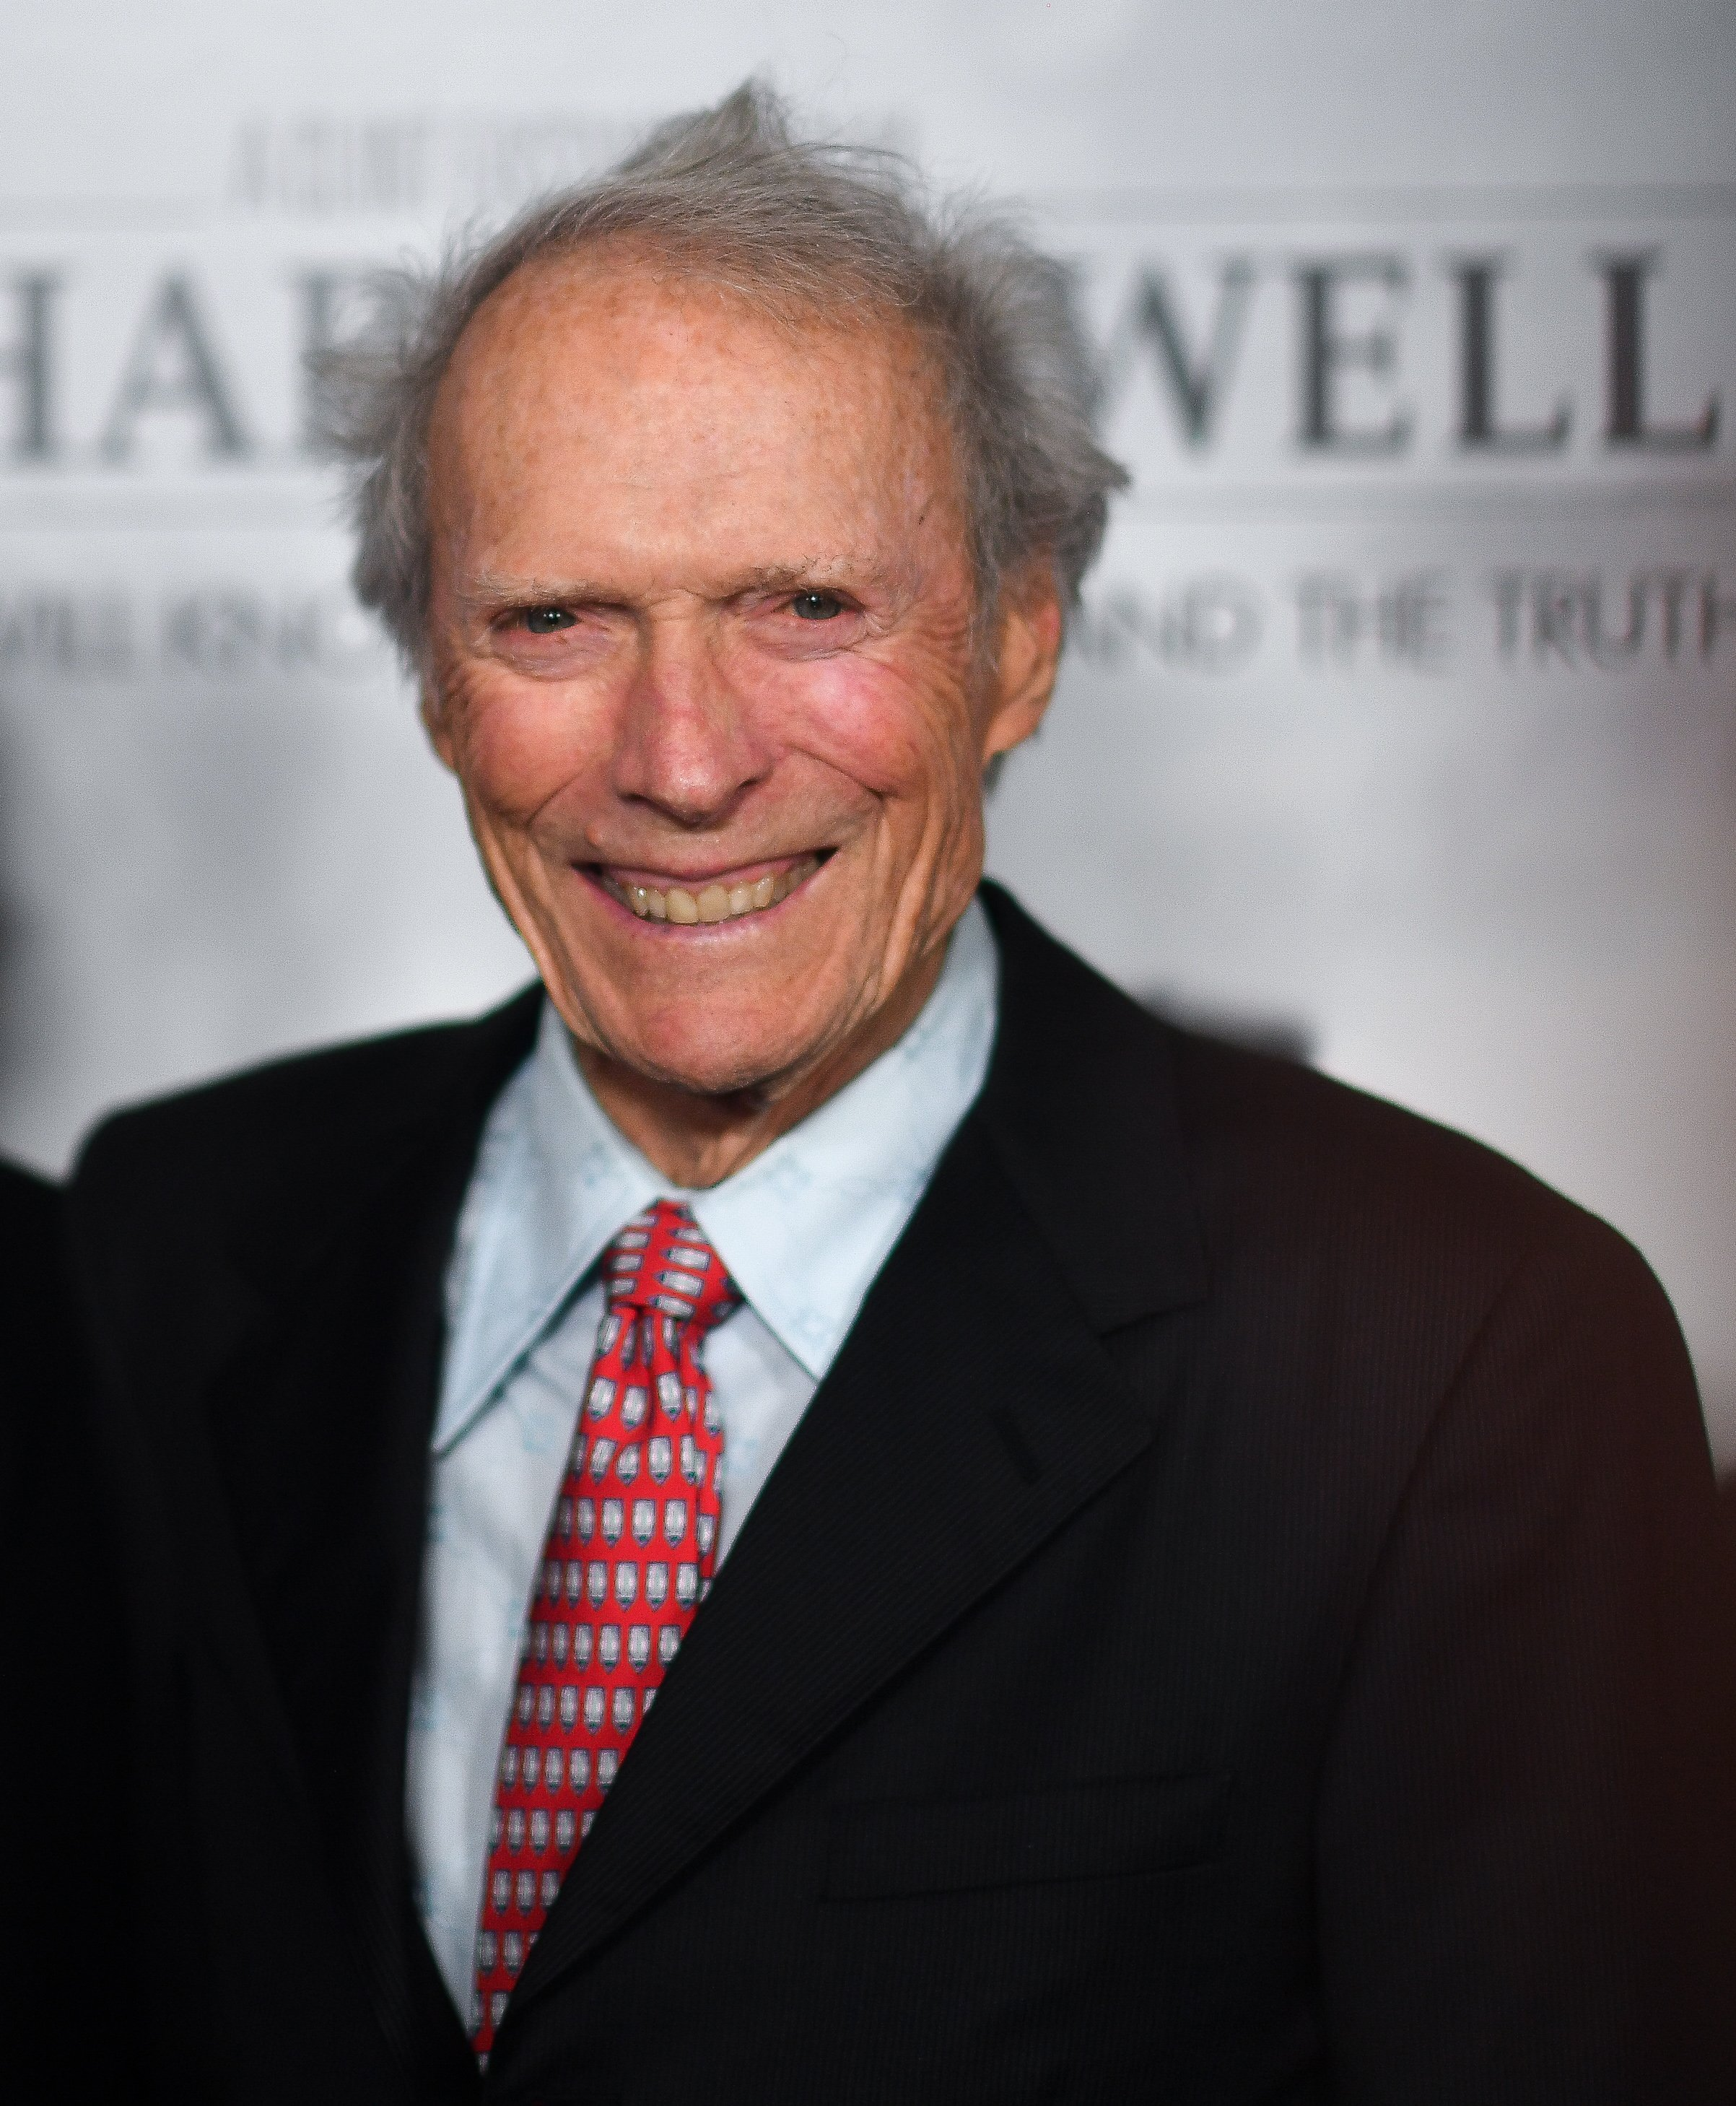 """Clint Eastwood attends the """"Richard Jewell"""" Atlanta Screening at Rialto Center of the Arts on December 10, 2019 in Atlanta, Georgia   Source: Getty Images"""